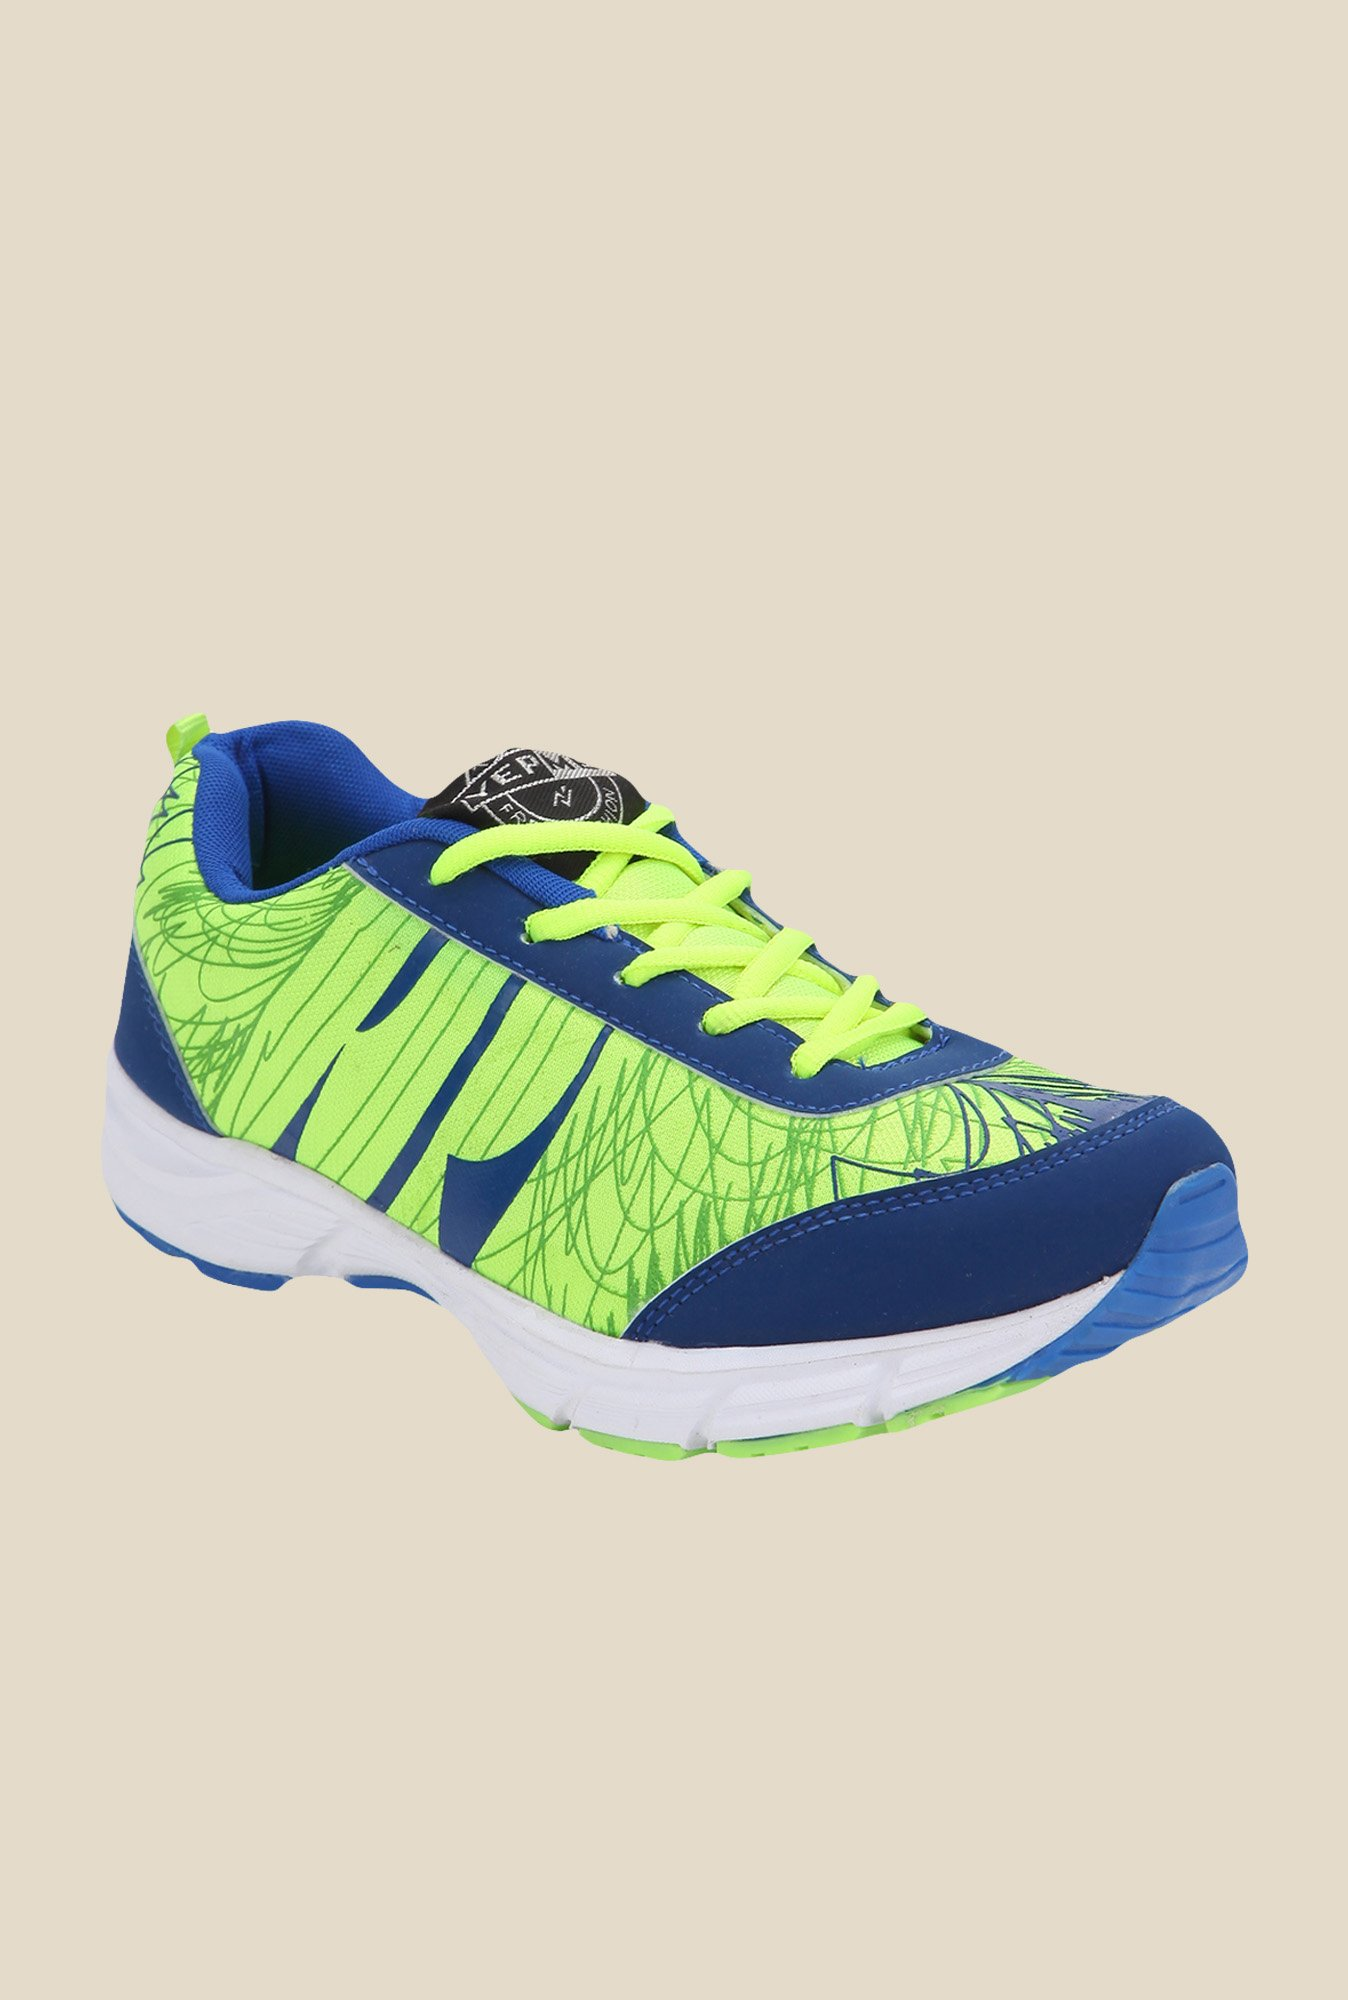 Yepme Premium Green & Blue Running Shoes